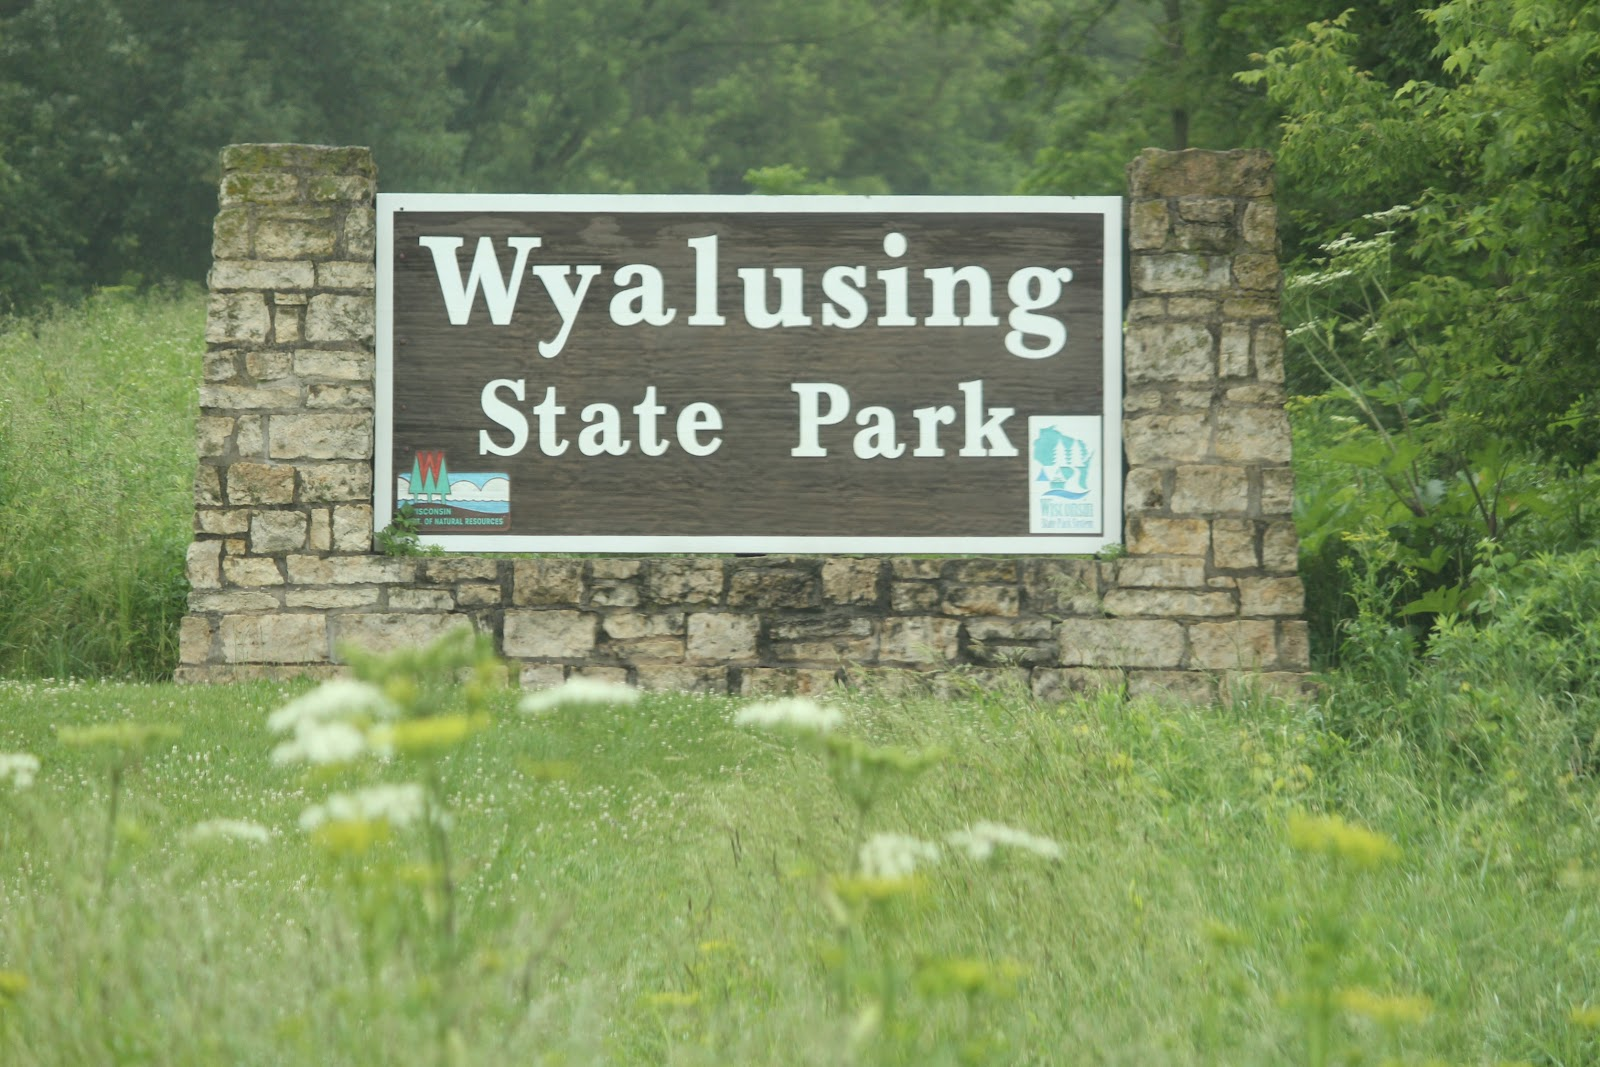 personals in wyalusing wisconsin